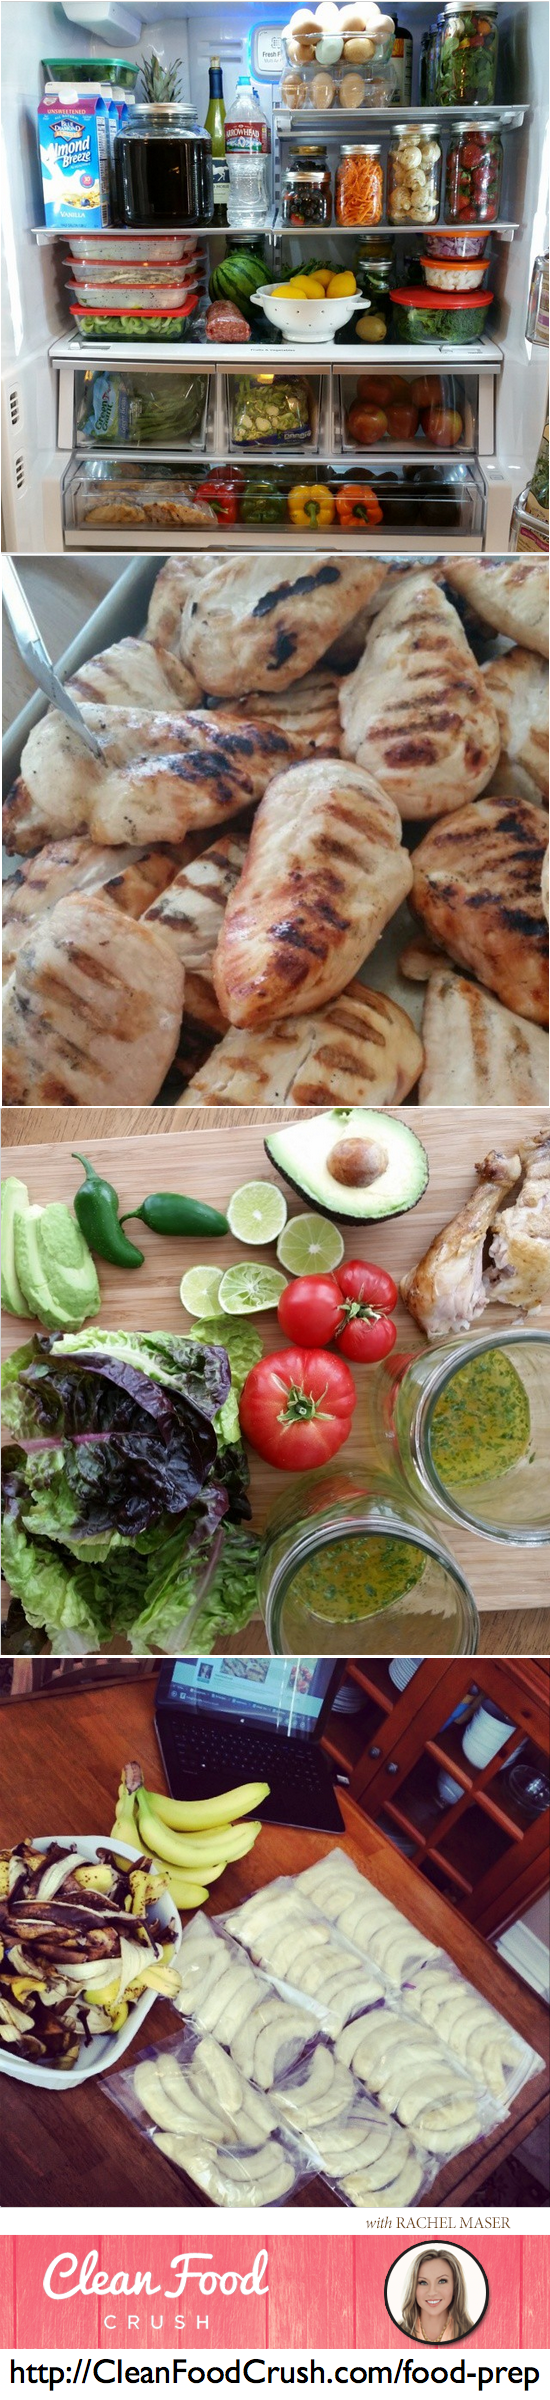 clean food crush food prep instructions https://cleanfoodcrush.com/food-prep/